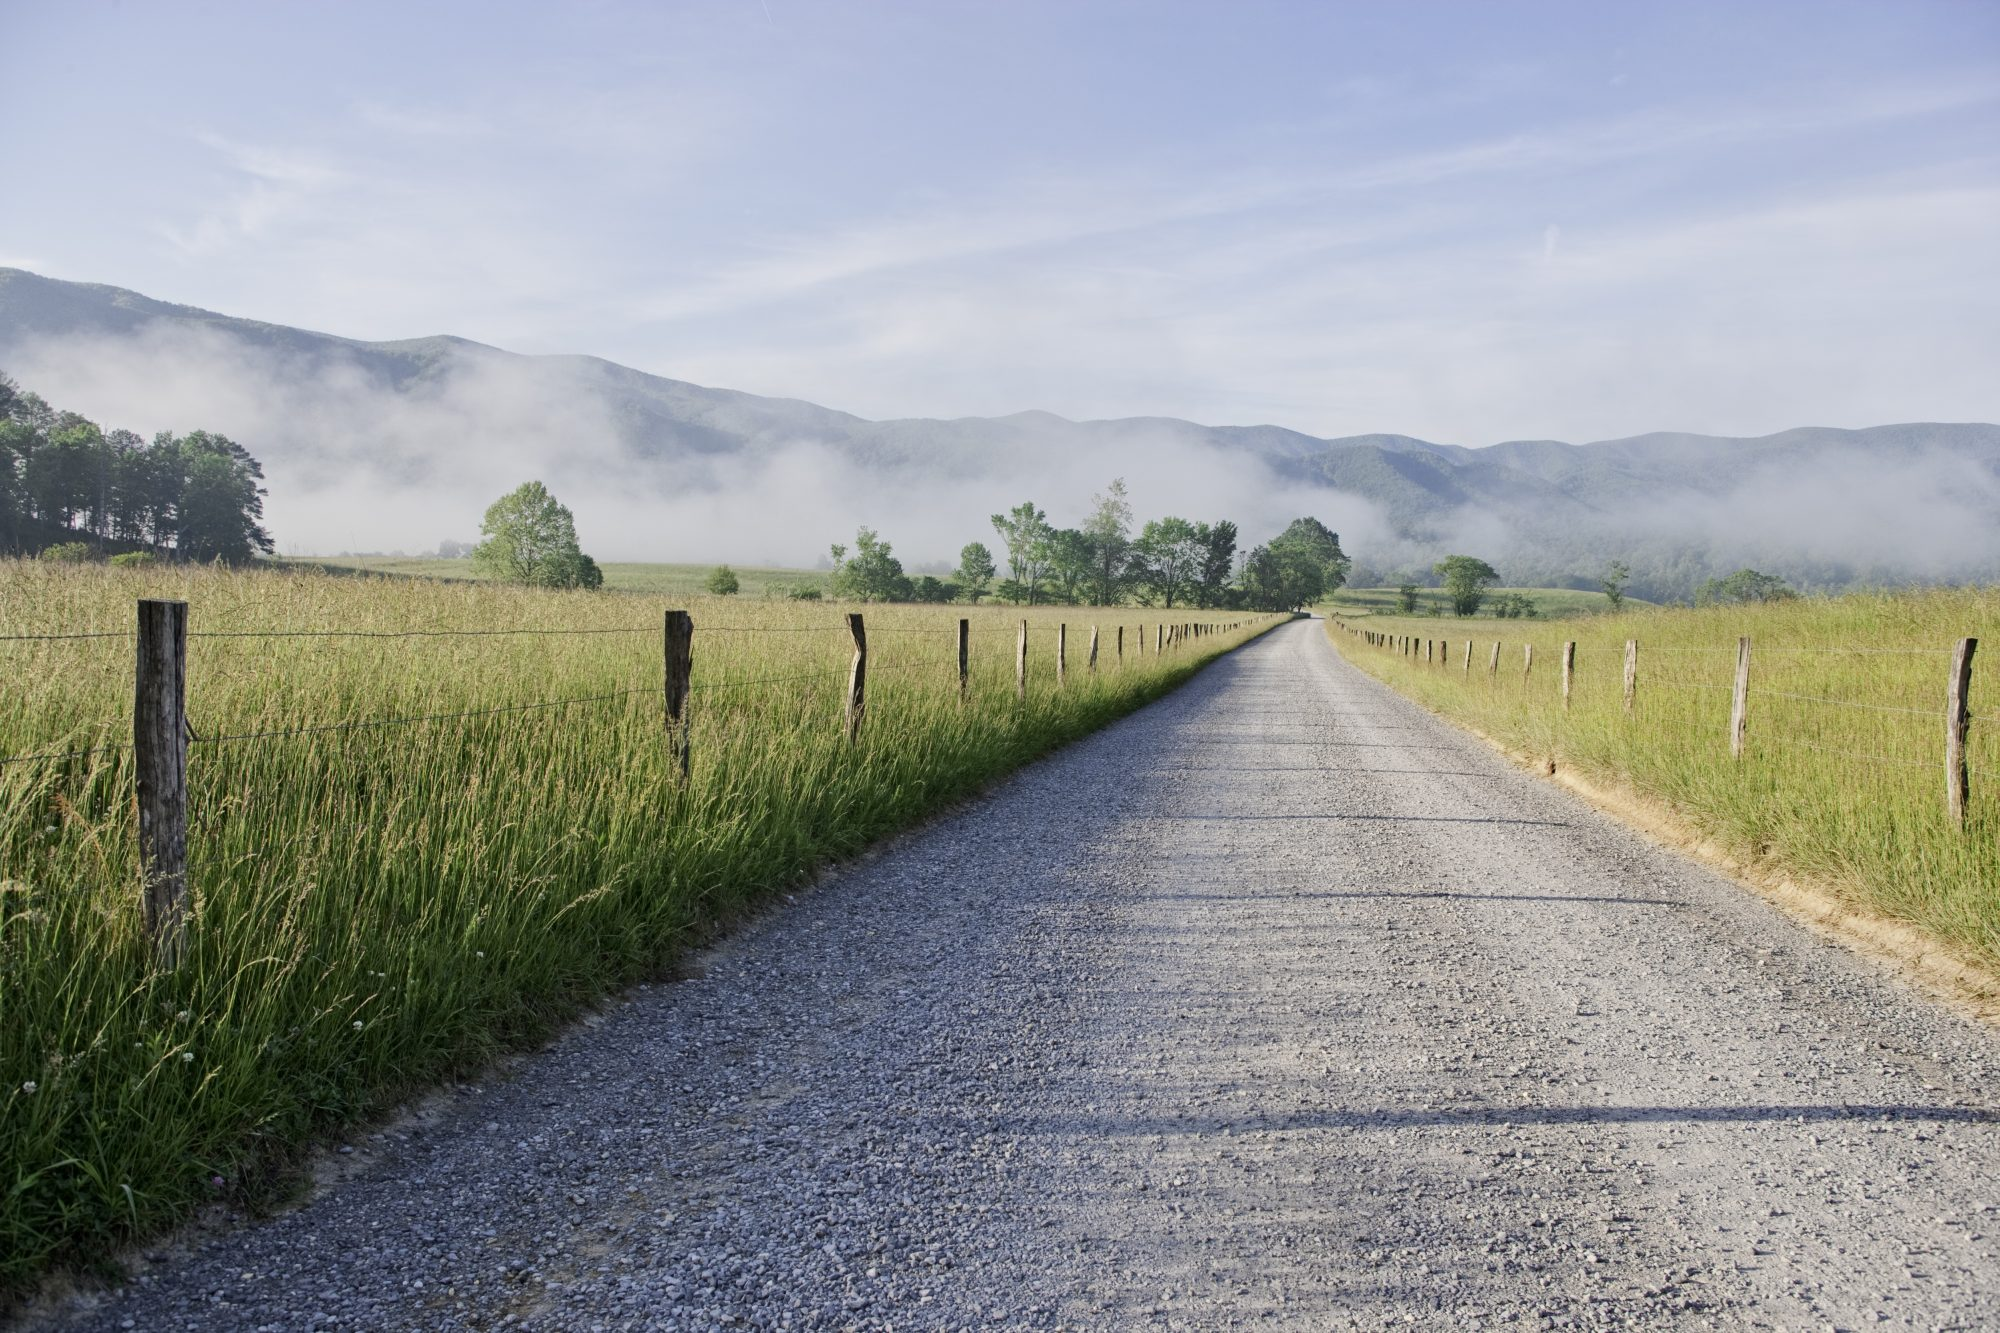 Country road in early morning in the Cades Cove area of the Smokies